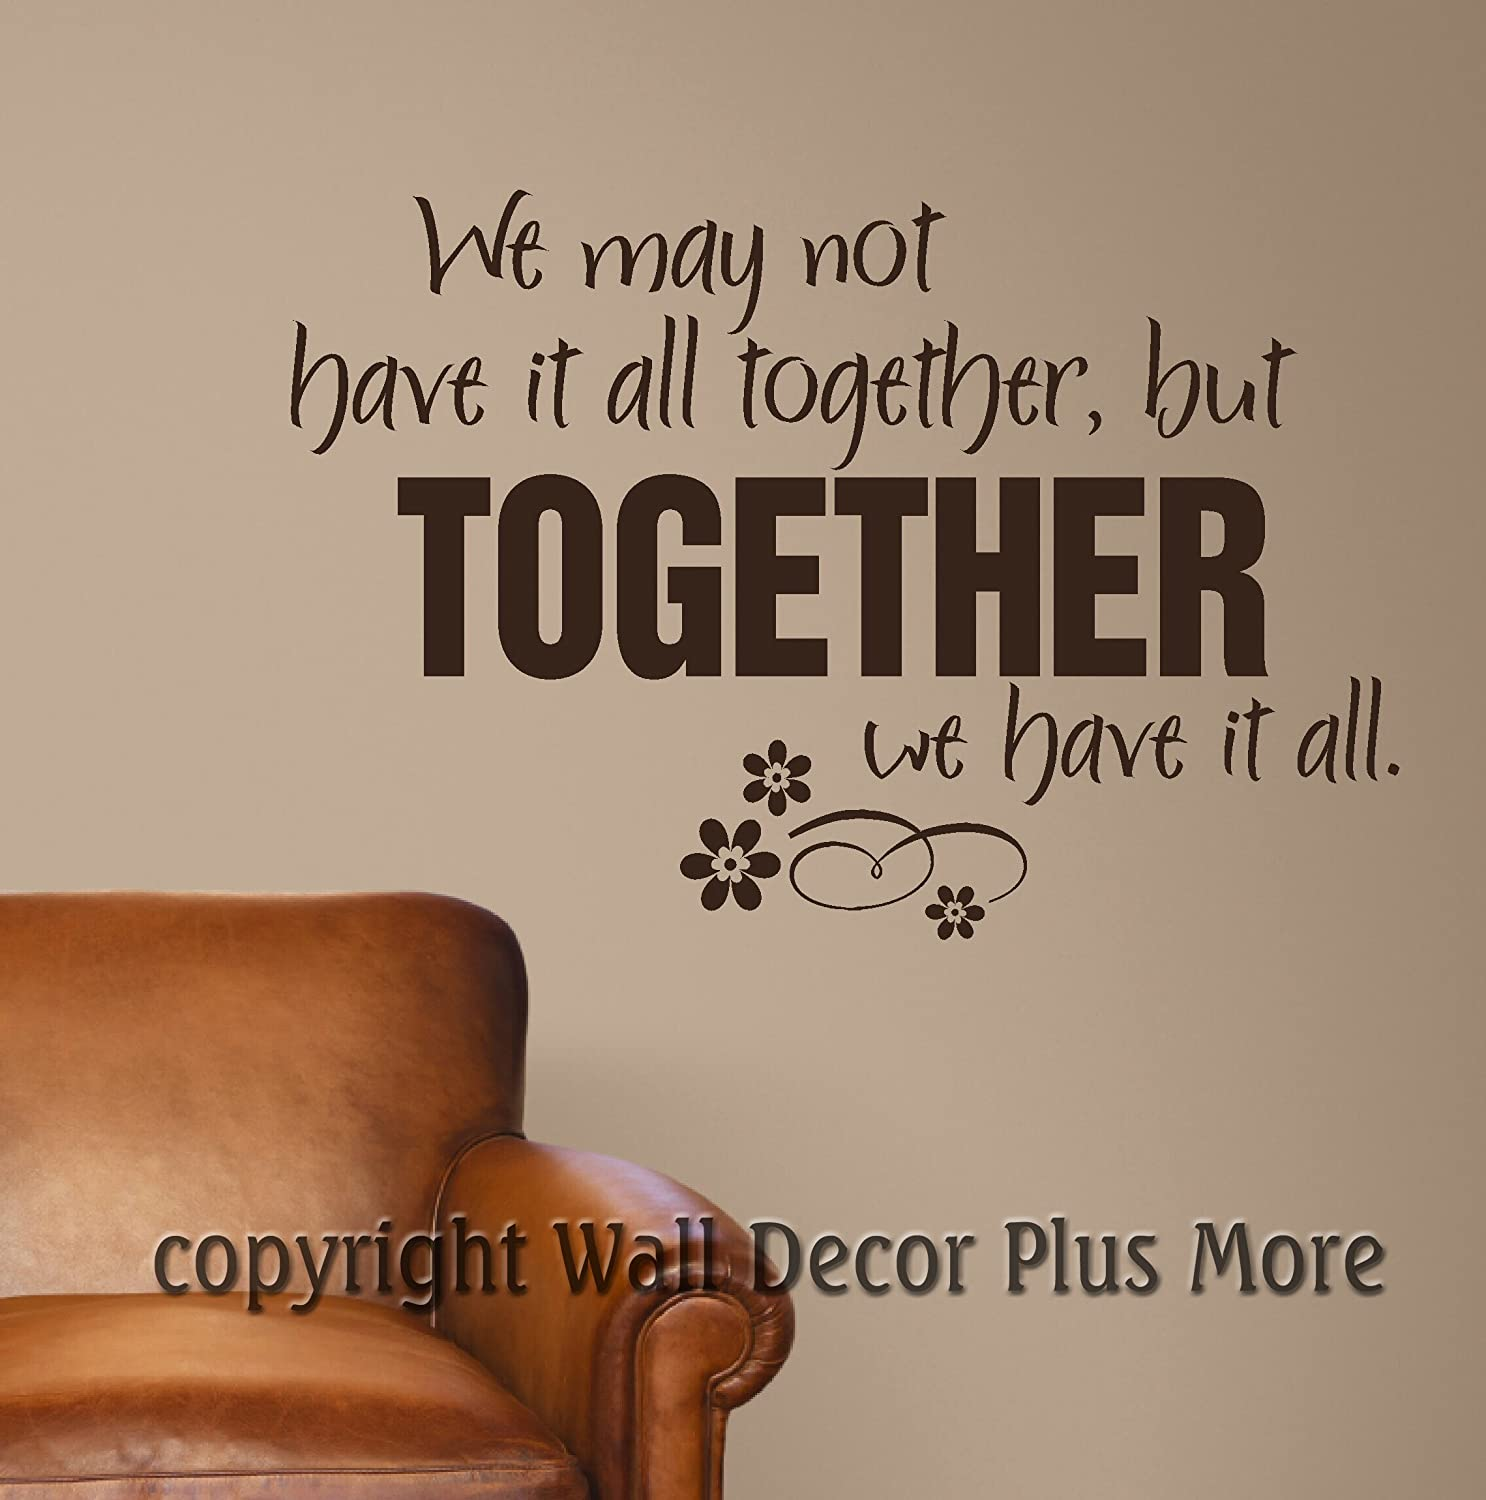 Wall Decor Plus More WDPM2331 We May Not Have It All Together But Together We Have It All Wall Sticker Vinyl Decal for Home Decor Use Chocolate Brown 34 x 23-Inch